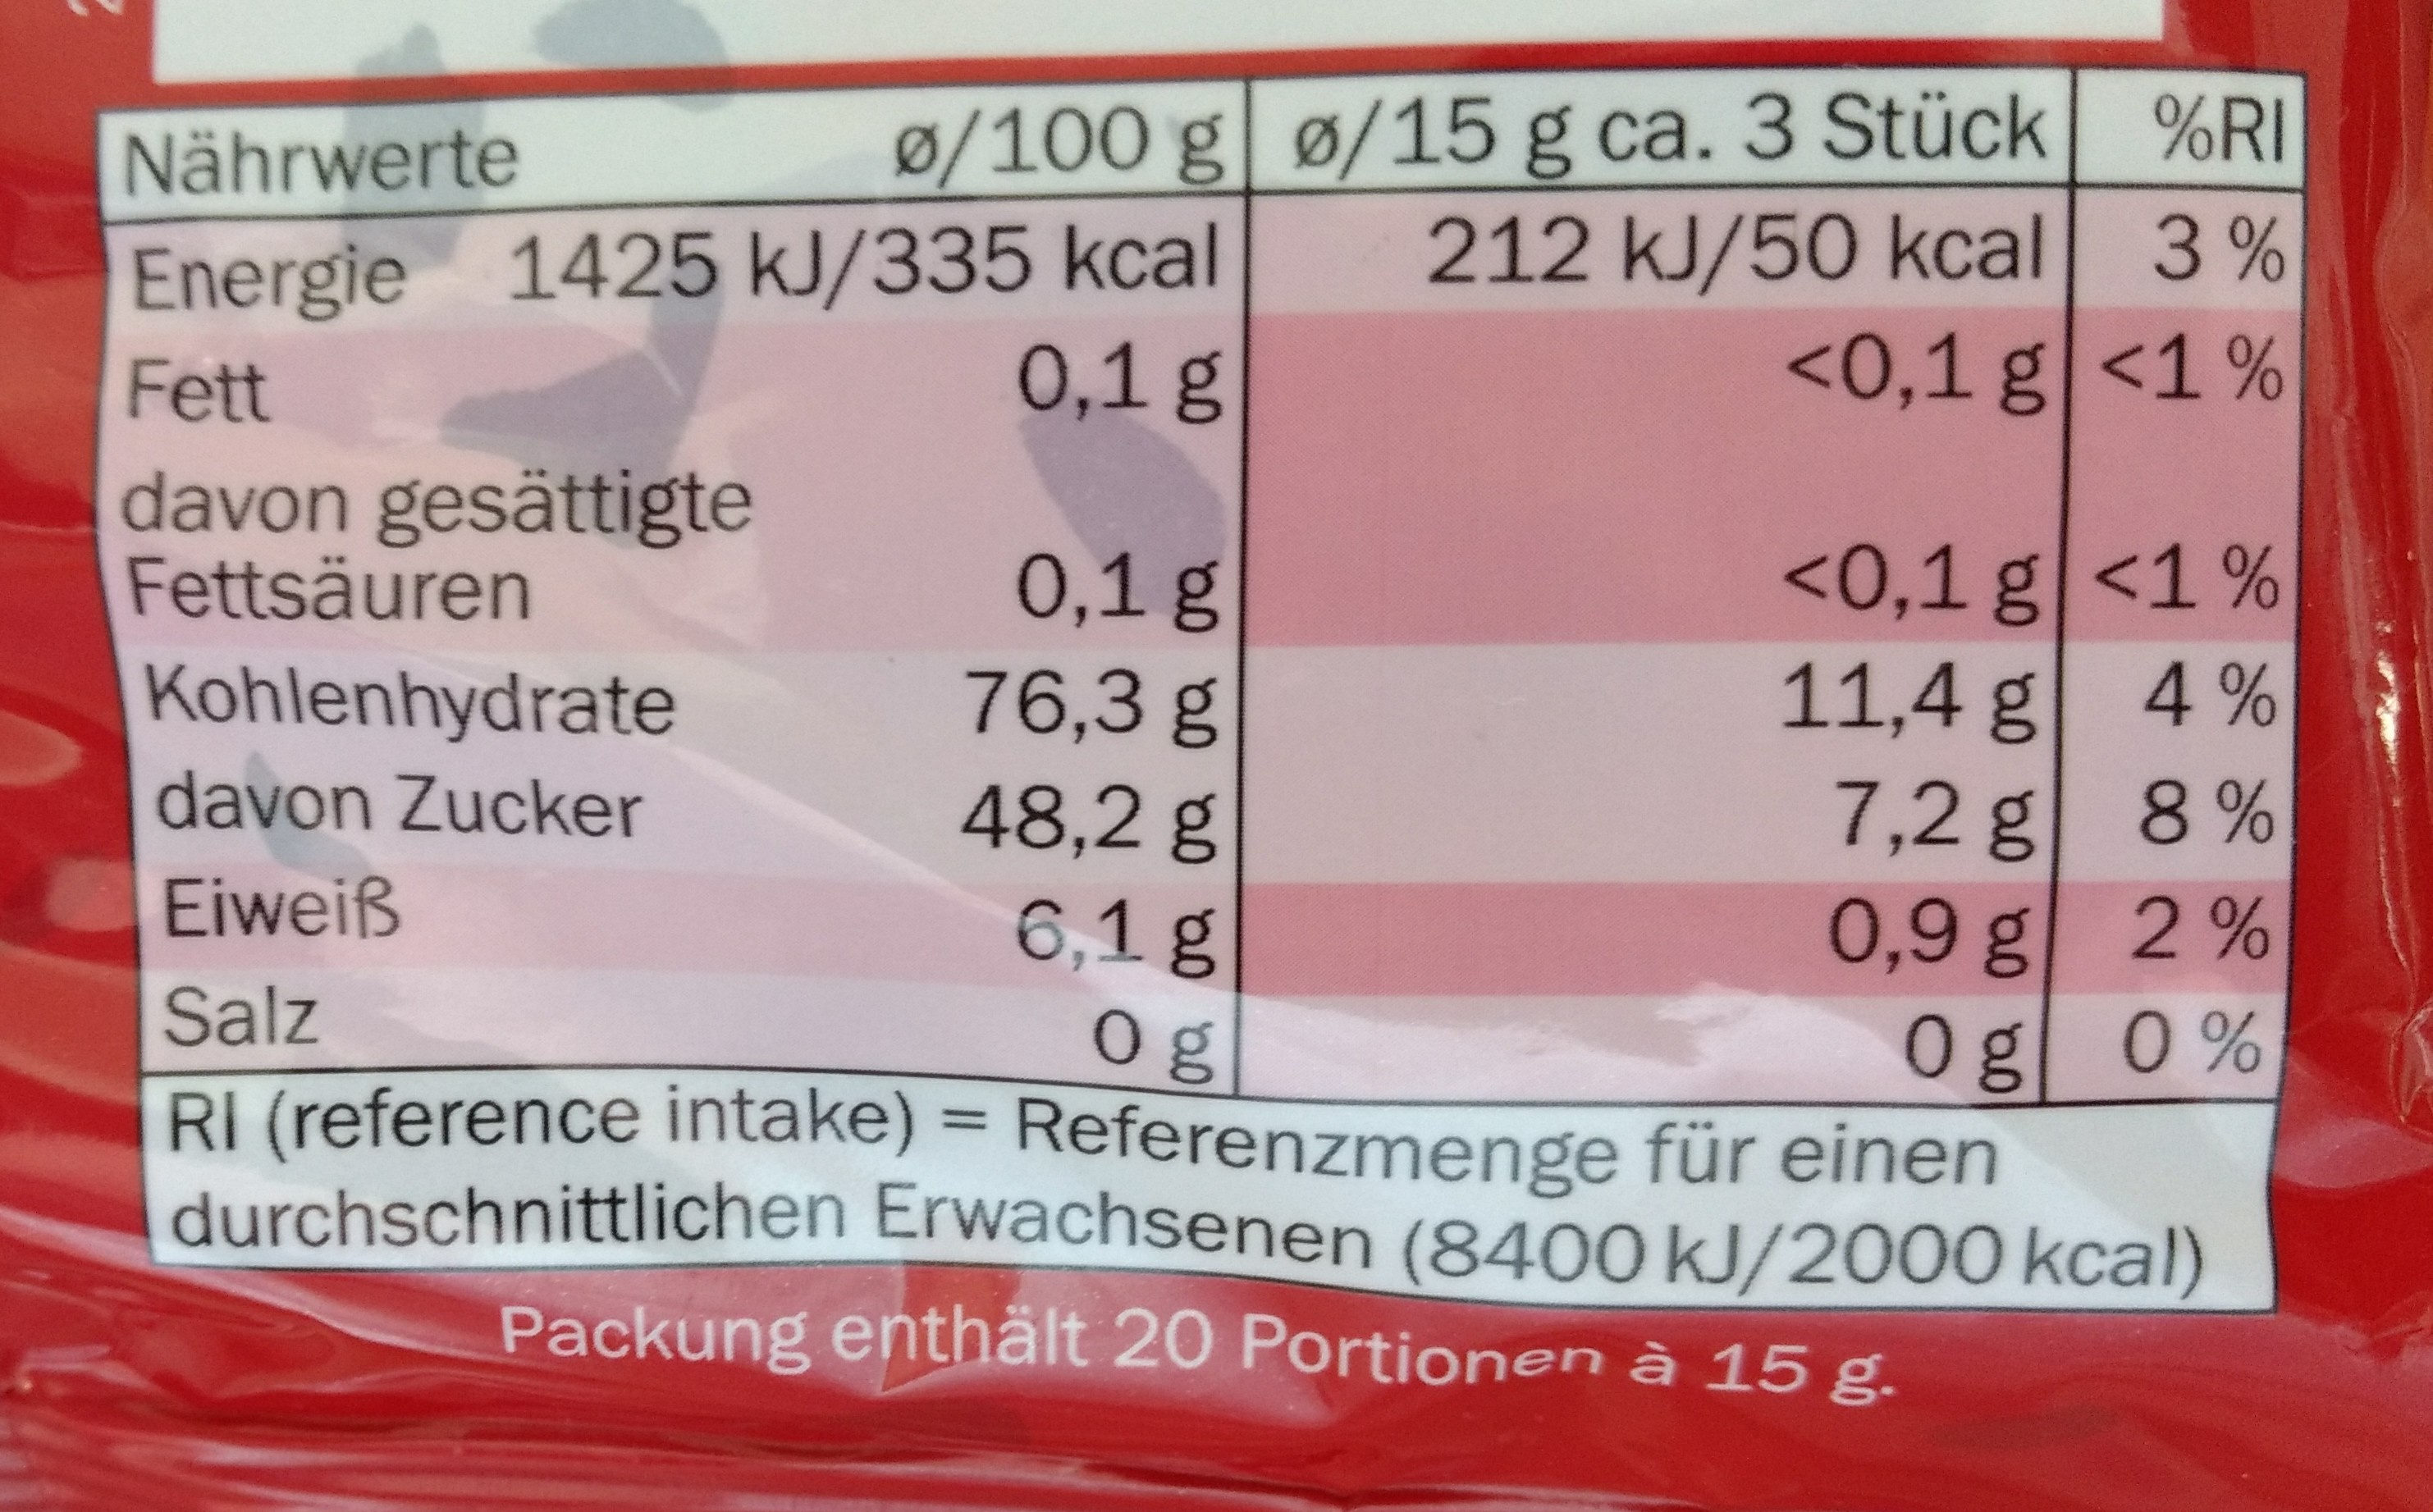 Sugarland Freche Trauben Weingummi 300g, Traubenw... - Nutrition facts